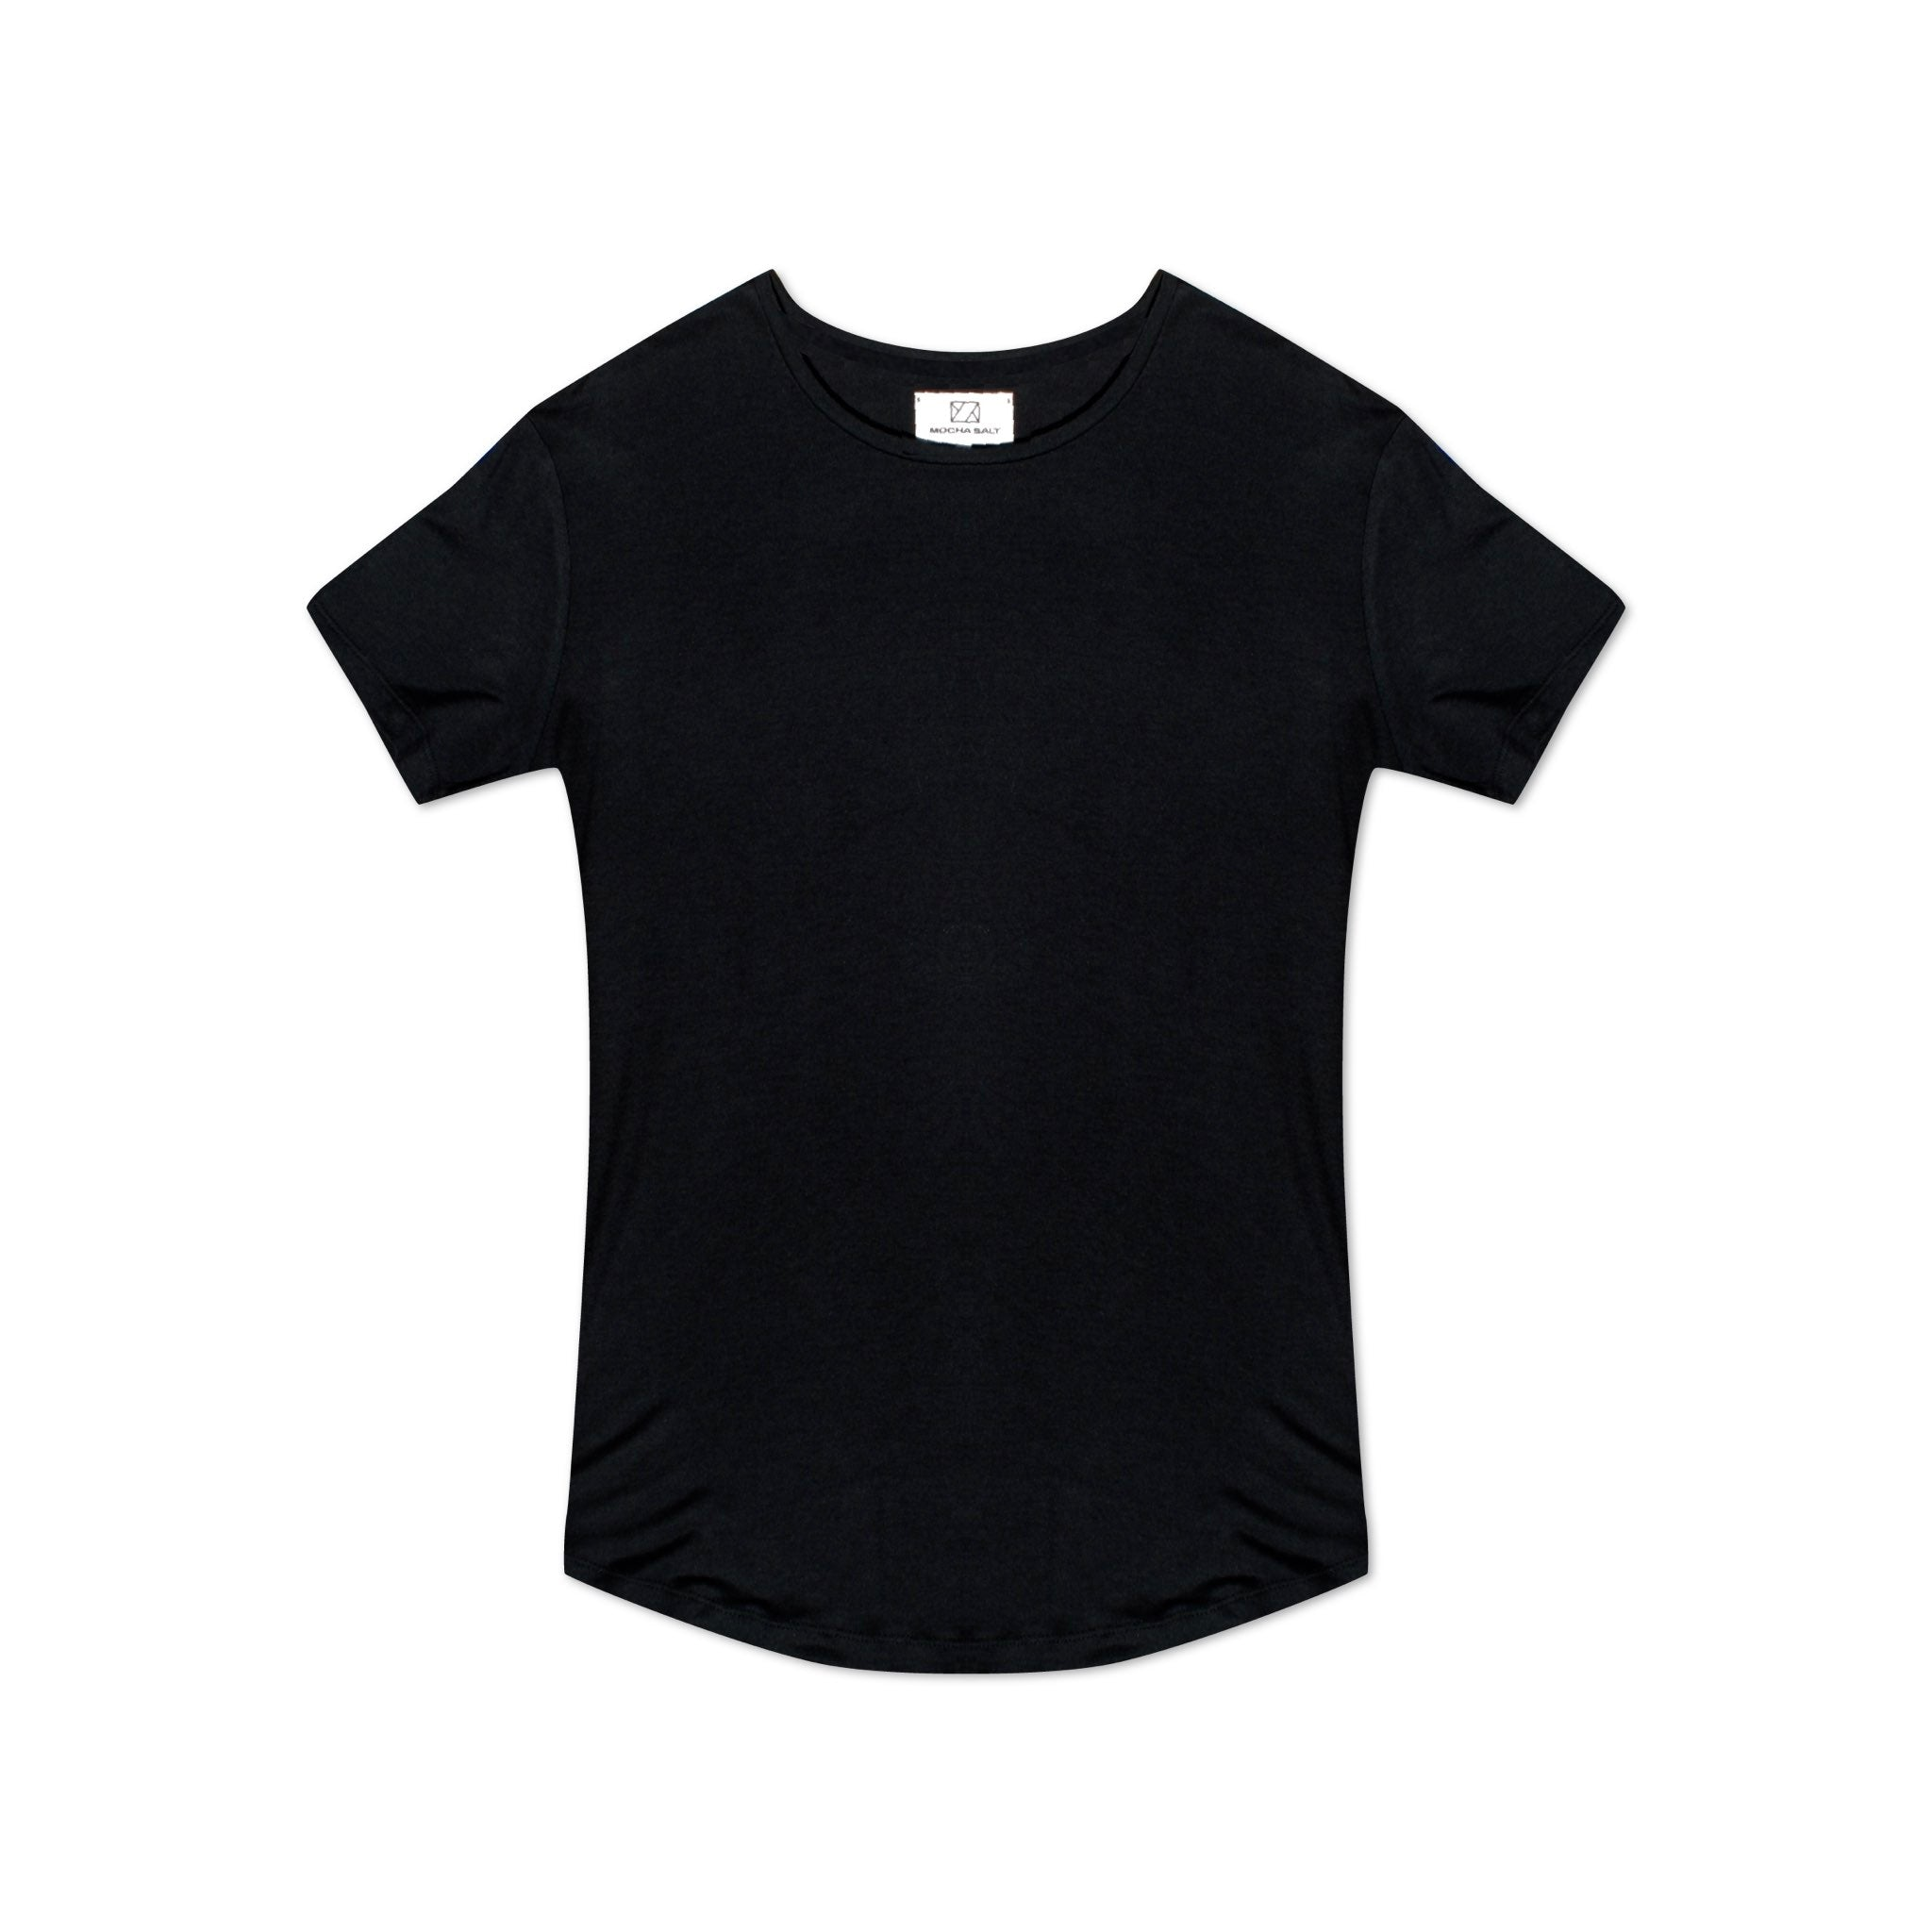 Crew Neck T-shirt Black